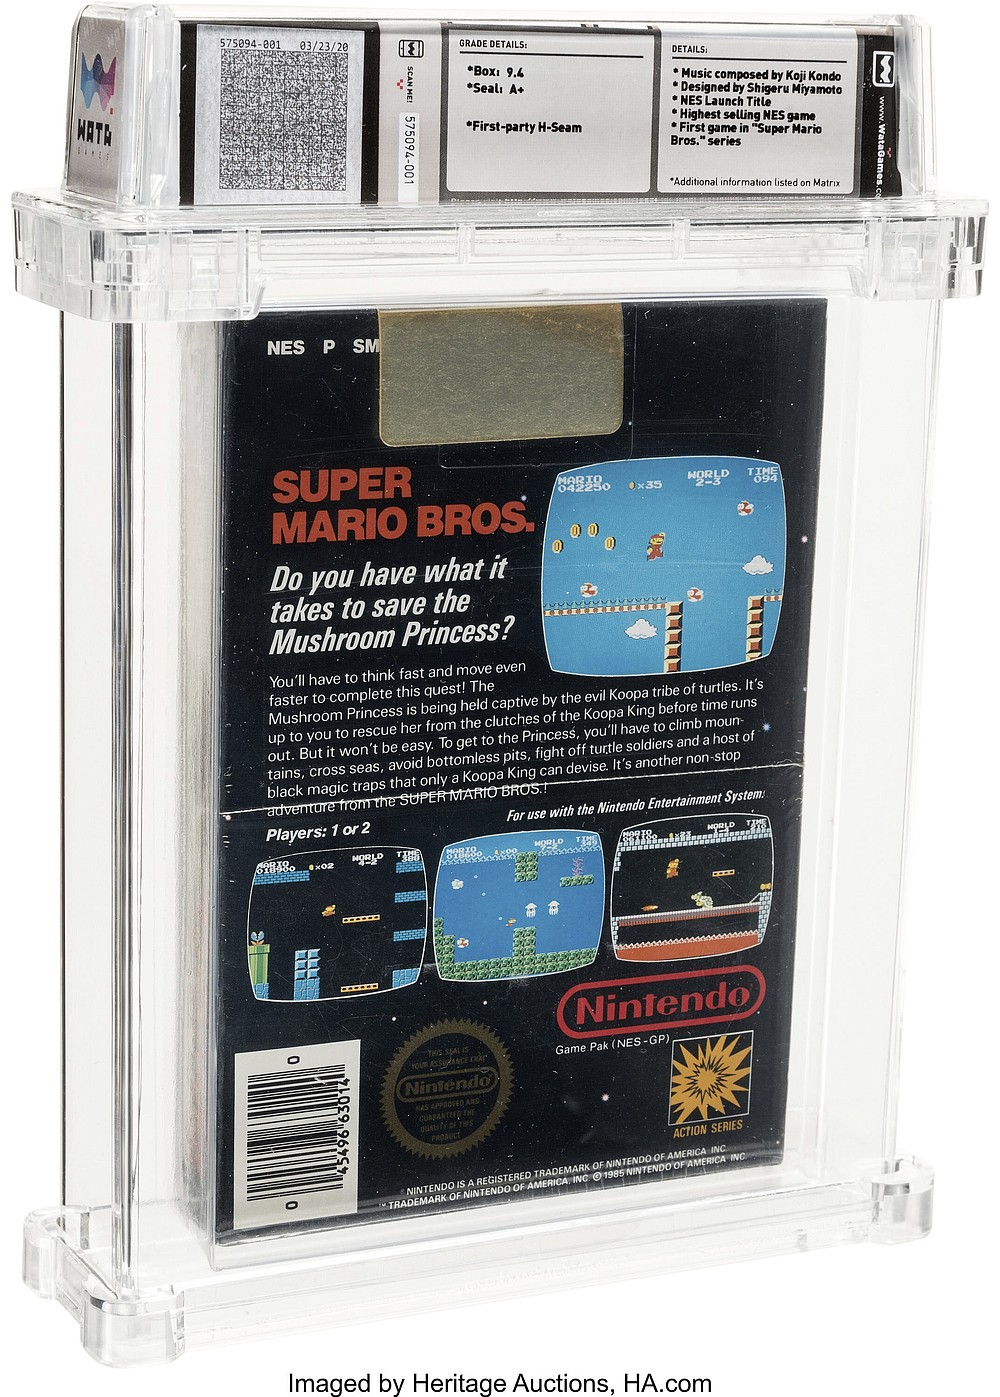 This photo provided by Heritage Auctions on Saturday, July 11, 2020, shows the back of an unopened copy of a vintage Super Mario Bros. video game that has been sold for $114,000 in an auction that underscored the enduring popularity of entertainment created decades earlier. (Emily Clemens/Heritage Auctions via AP)